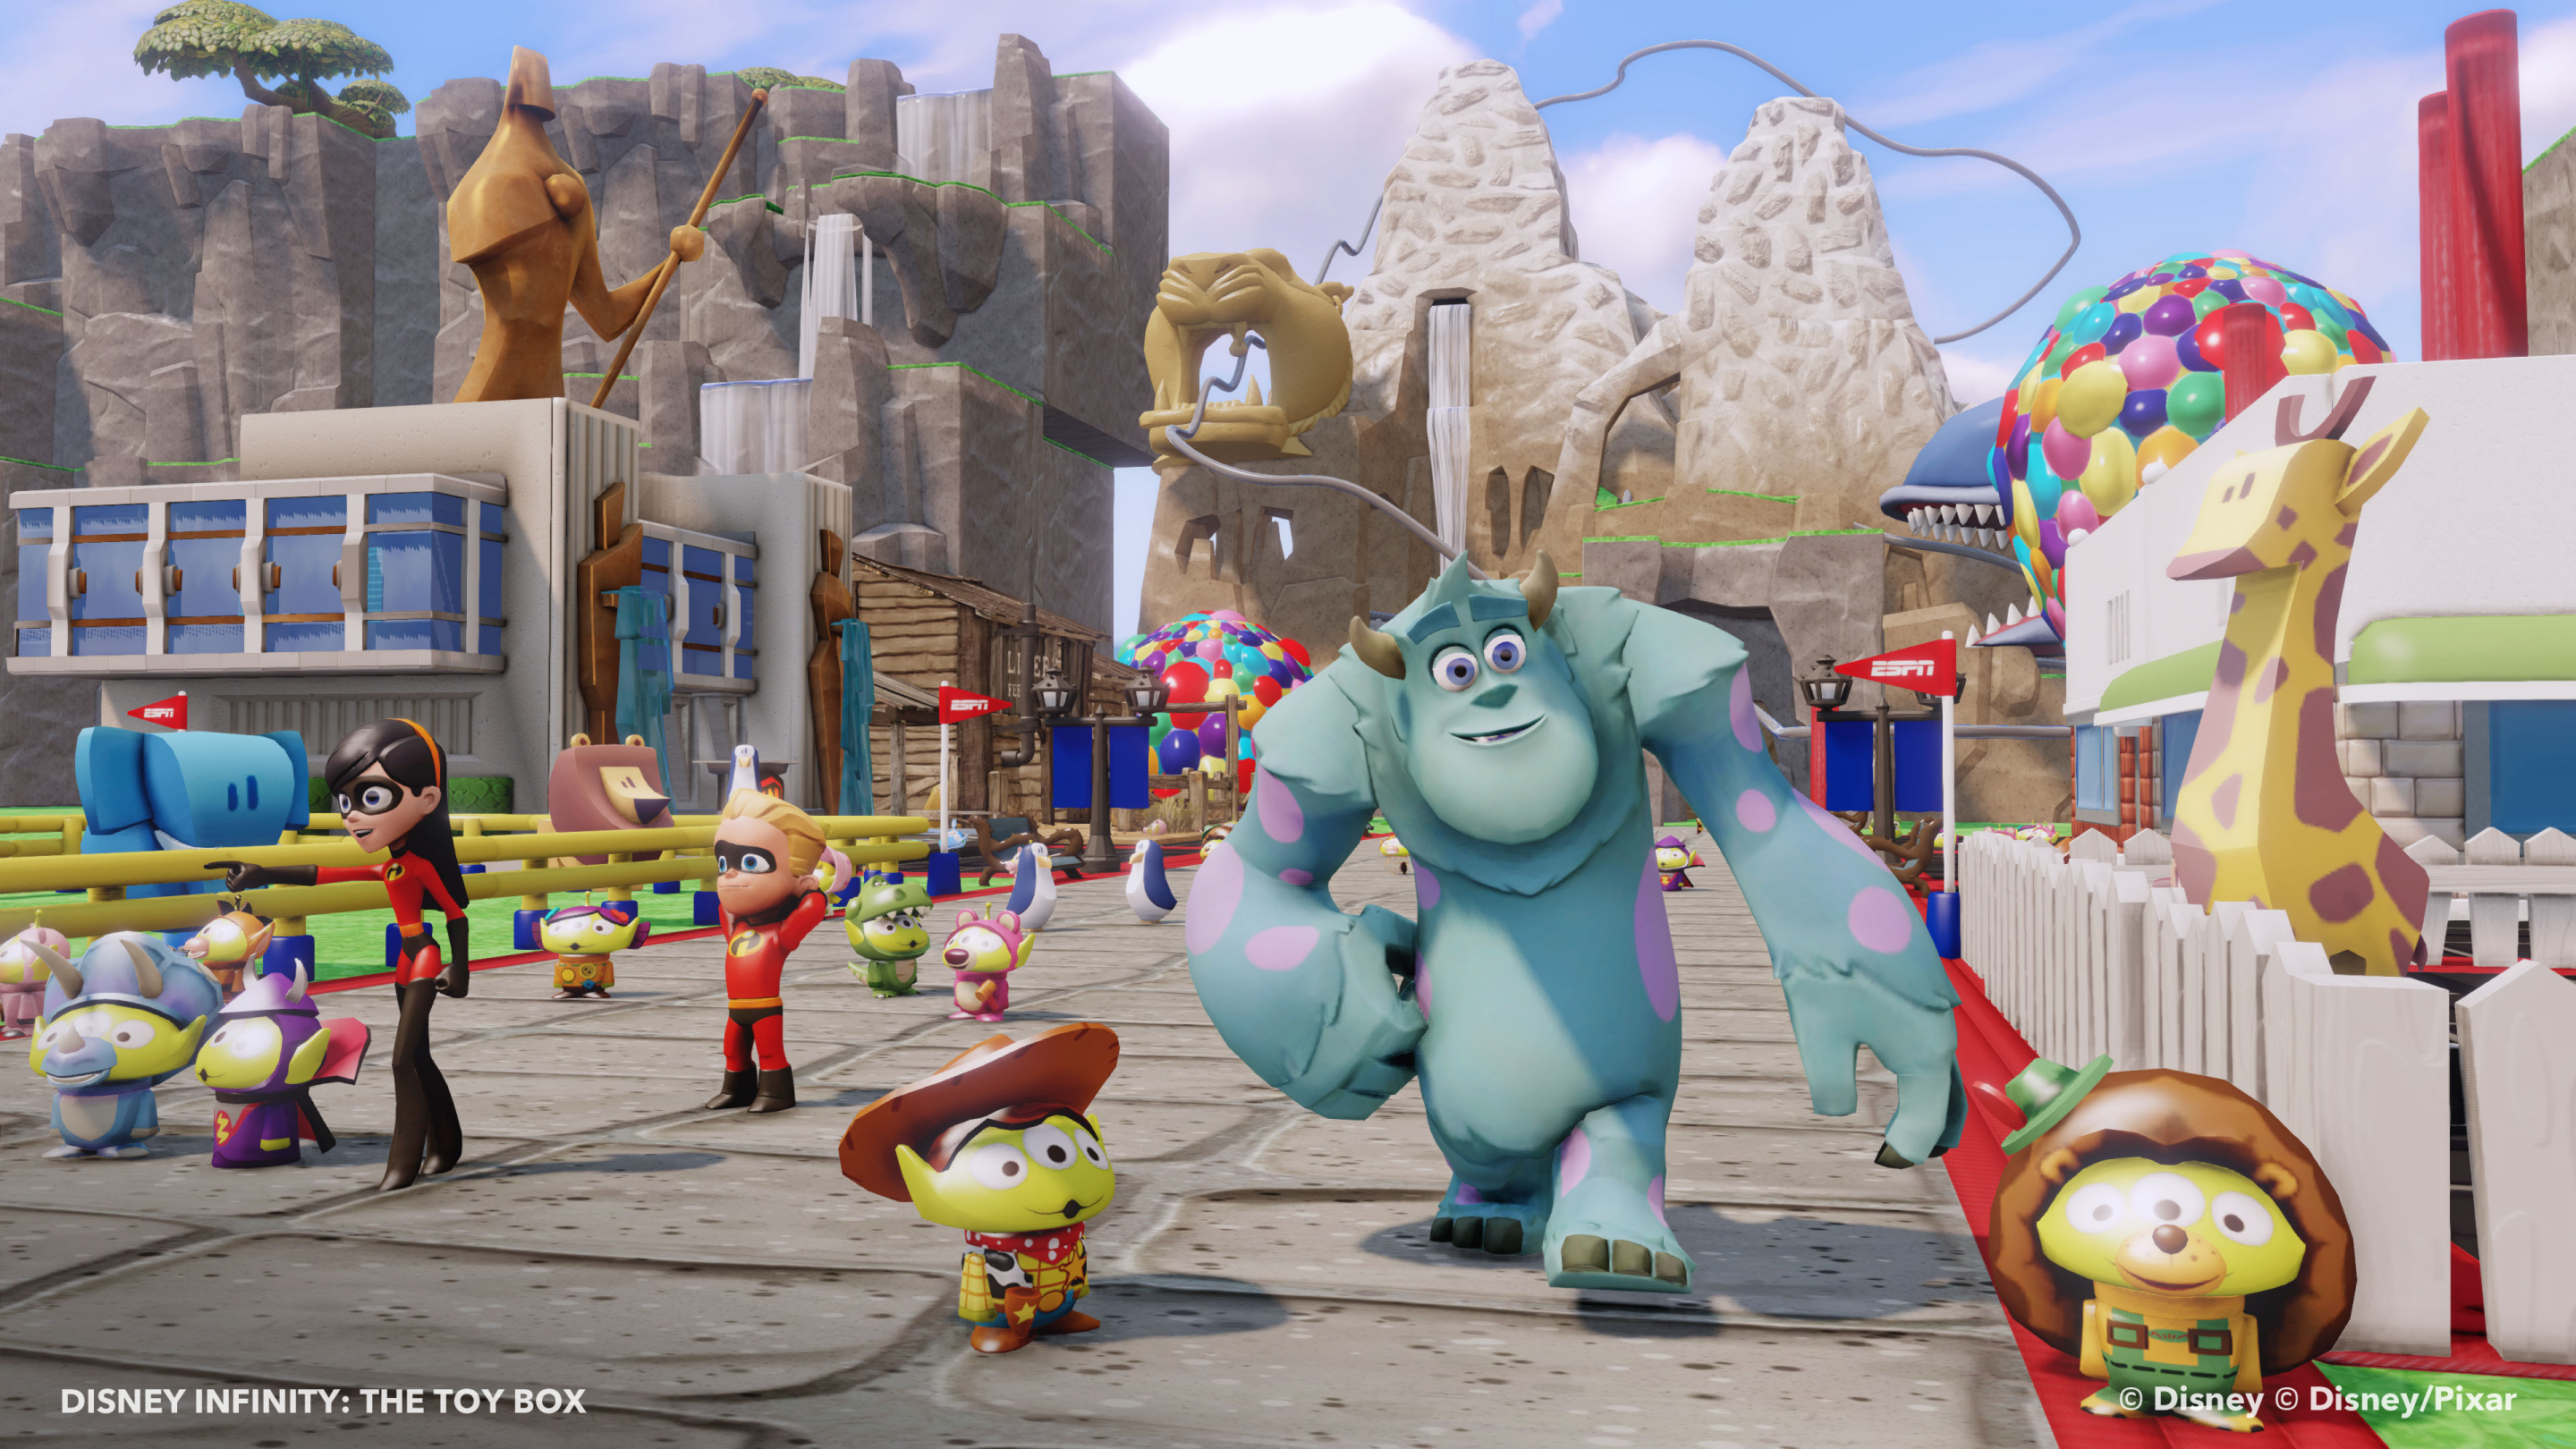 Disney Infinity News, Screenshots, Videos and More!